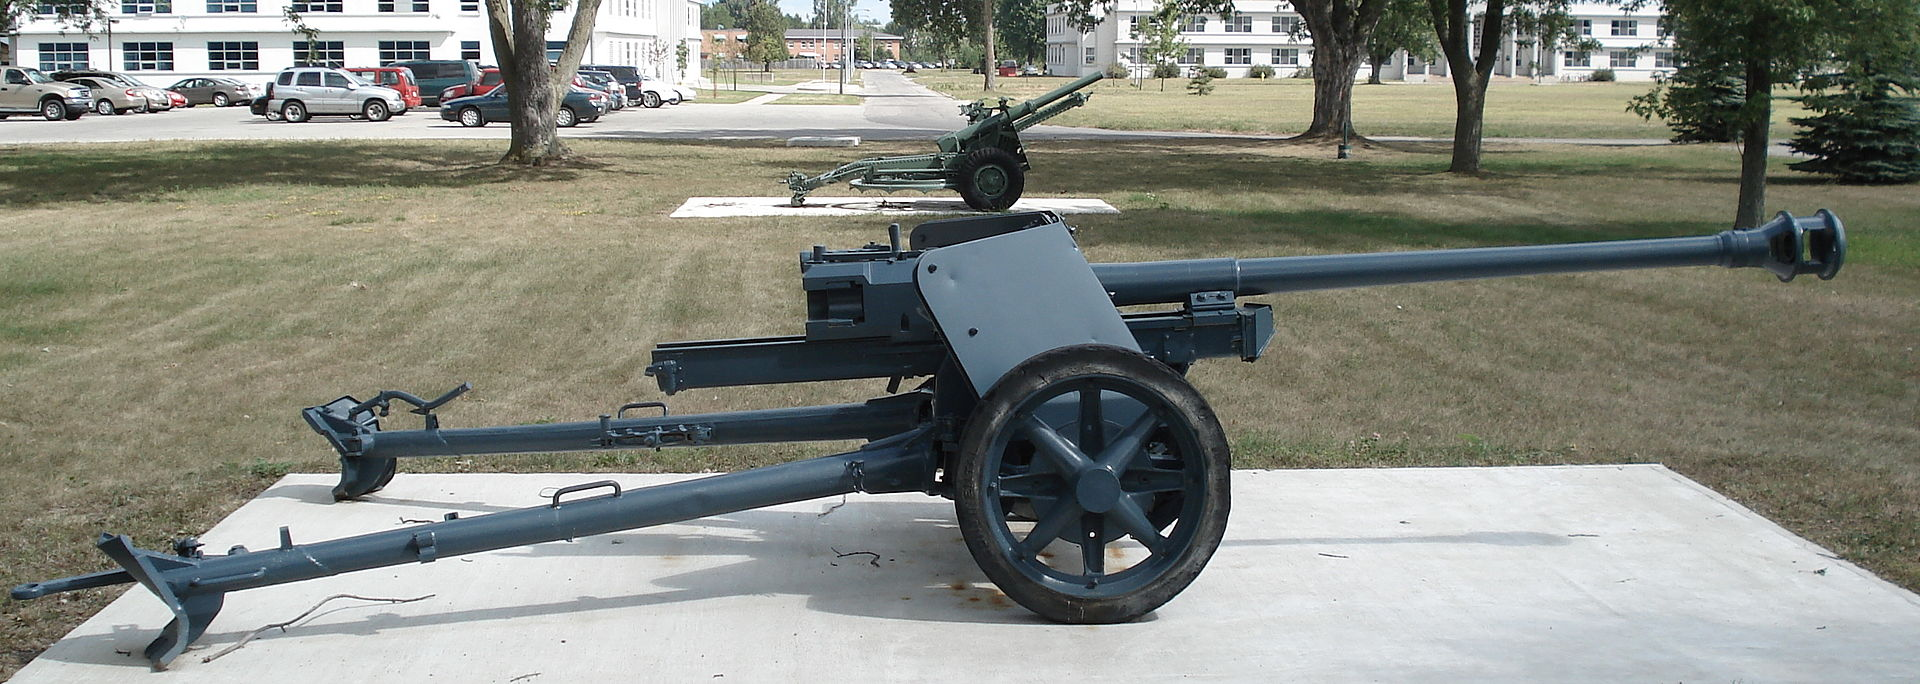 photo of 7.5cm Pak 40 L/48 from Wikipedia